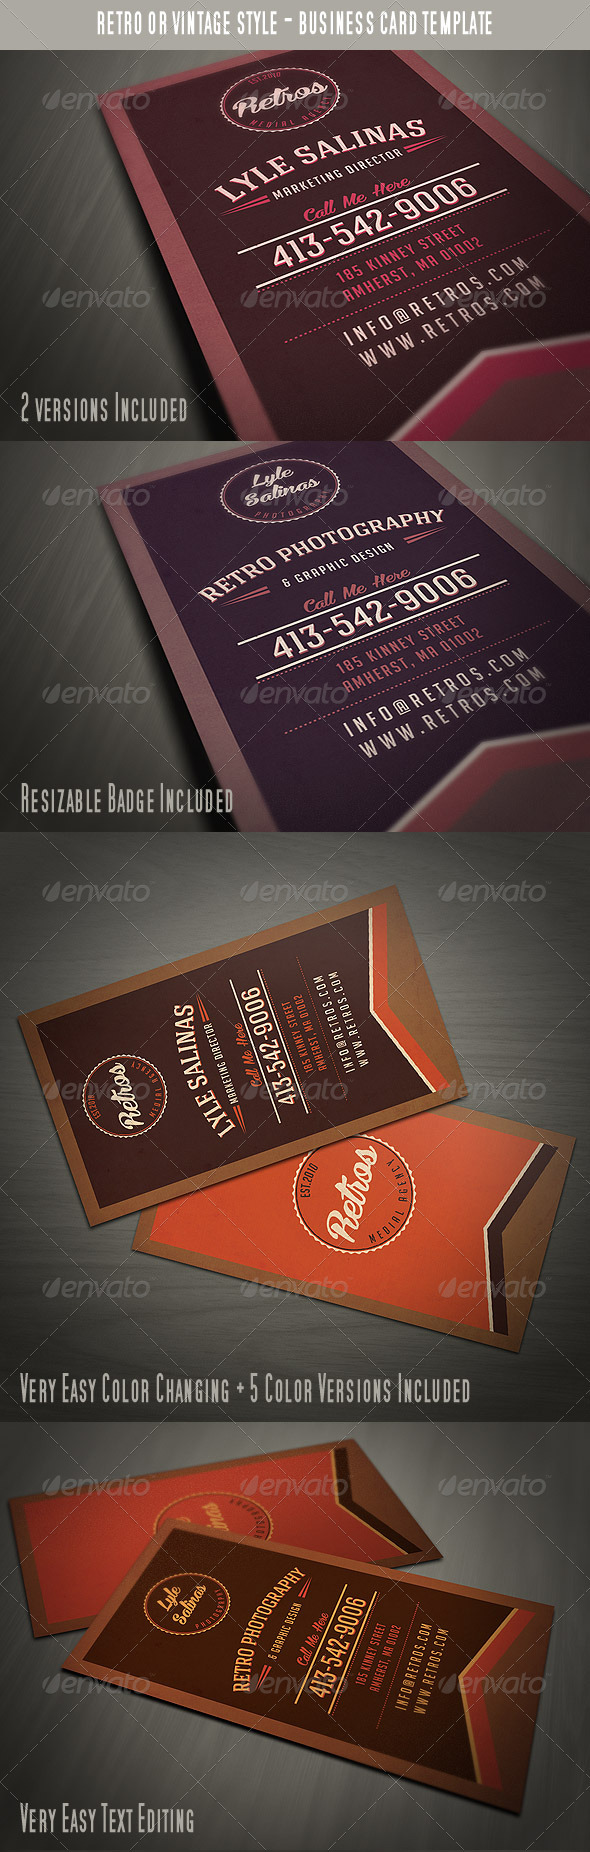 GraphicRiver Vintage Style Business Card 3528341